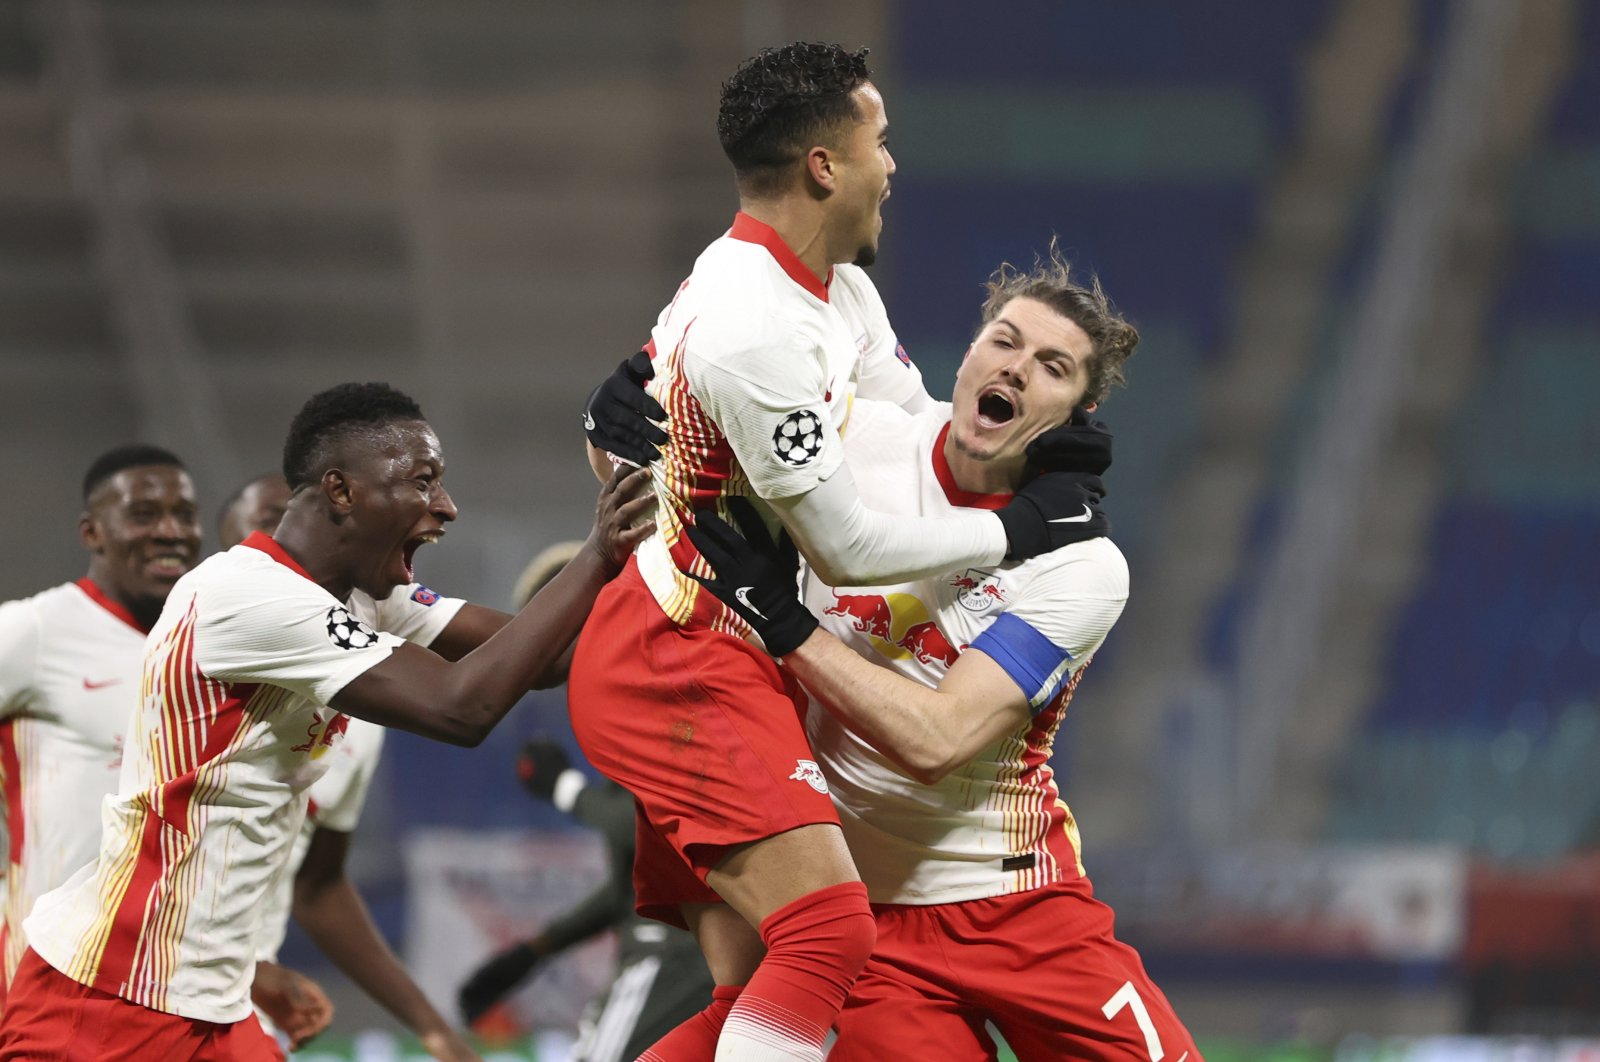 Leipzig's Justin Kluivert (C) celebrates scoring the third goal during the Champions League match against Manchester United at the RB Arena in Leipzig, Germany, Dec. 8, 2020. (DPA via AP Photo)